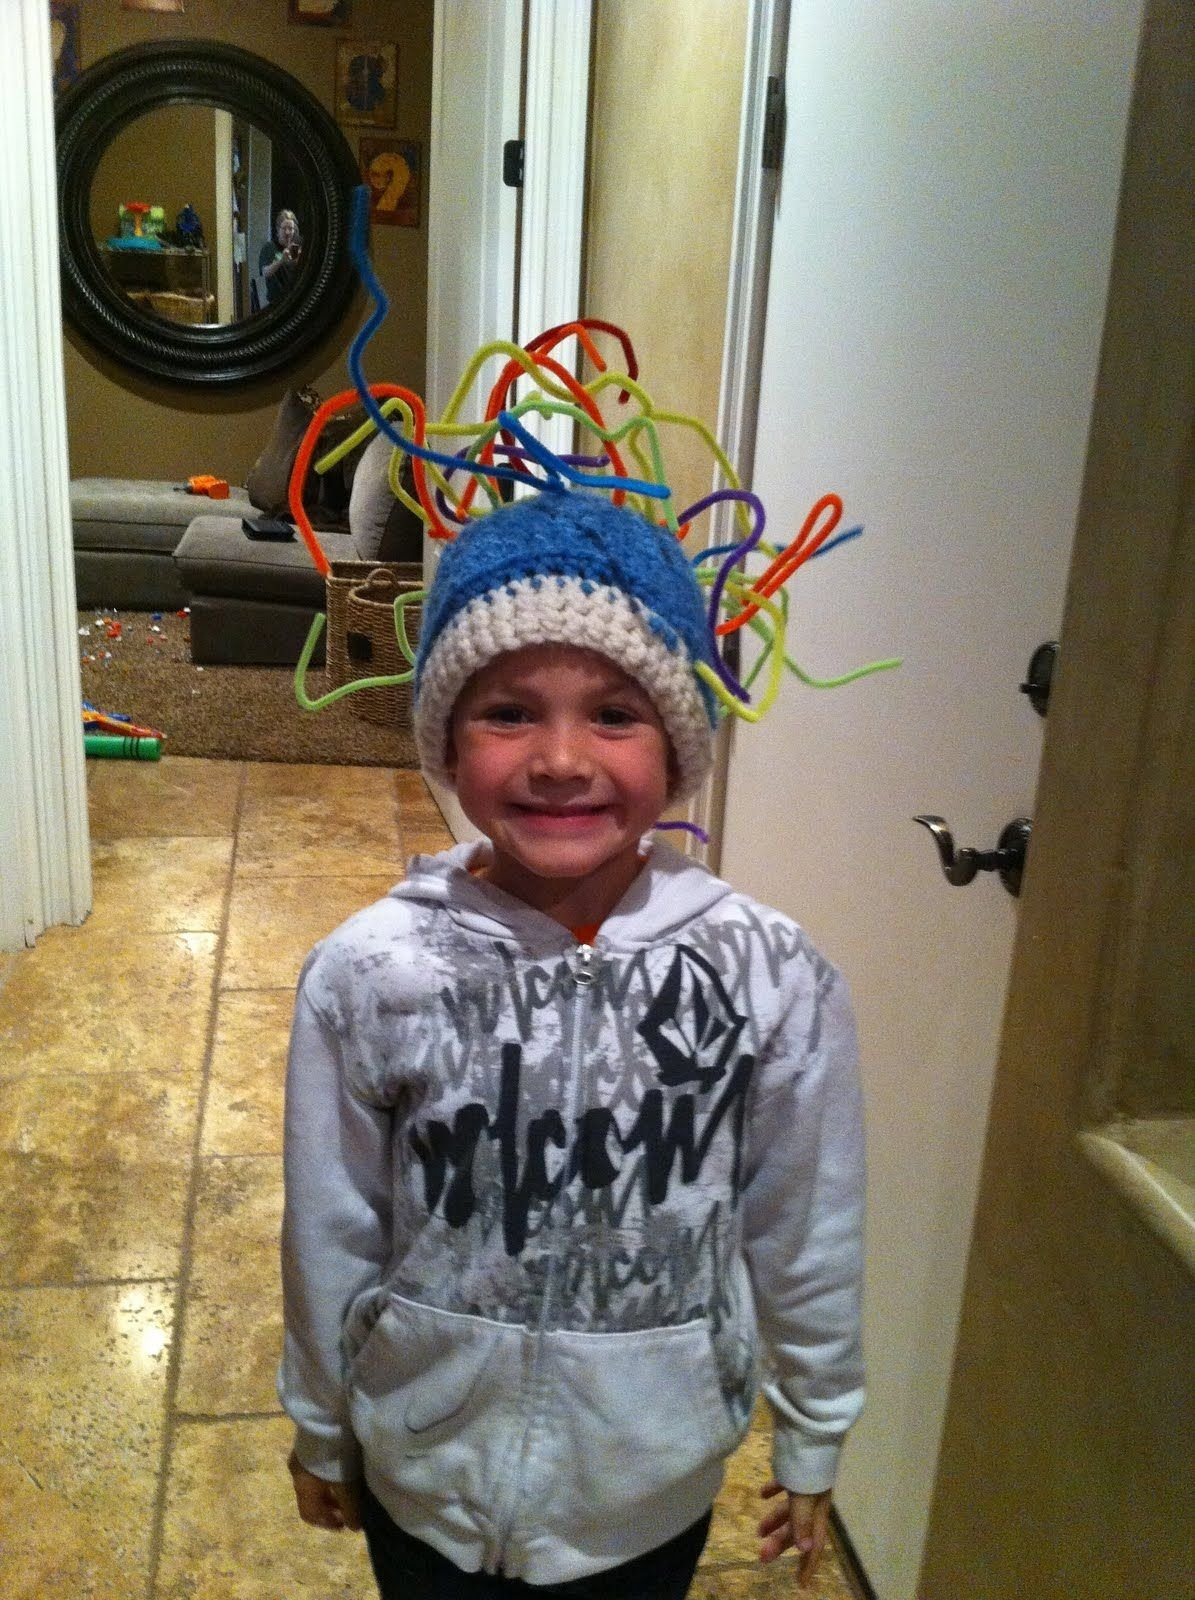 10 Fantastic Crazy Hat Ideas For Kids crazy hat day for kids crew and i had fun making his hat for crazy